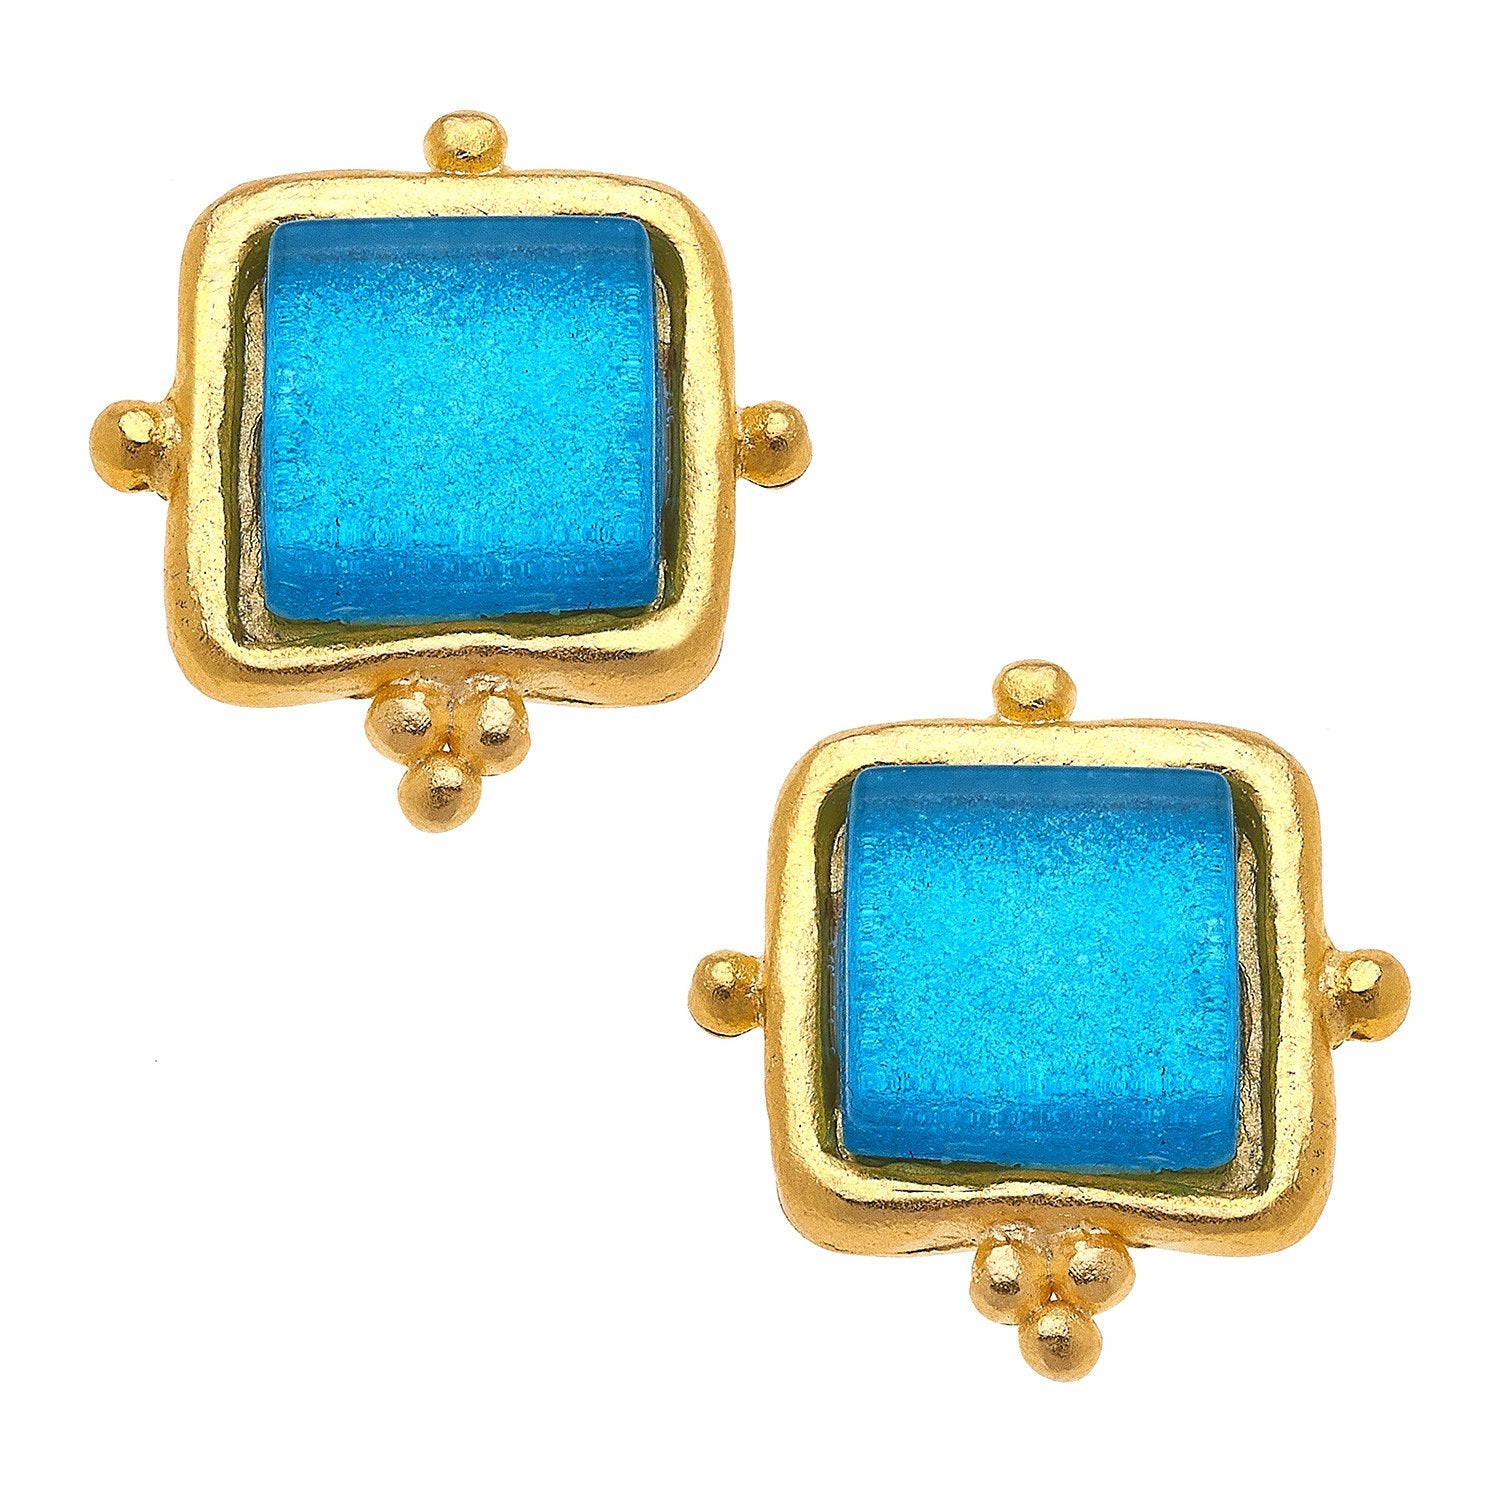 Susan Shaw Madeline Stud Earrings in Classic Blue